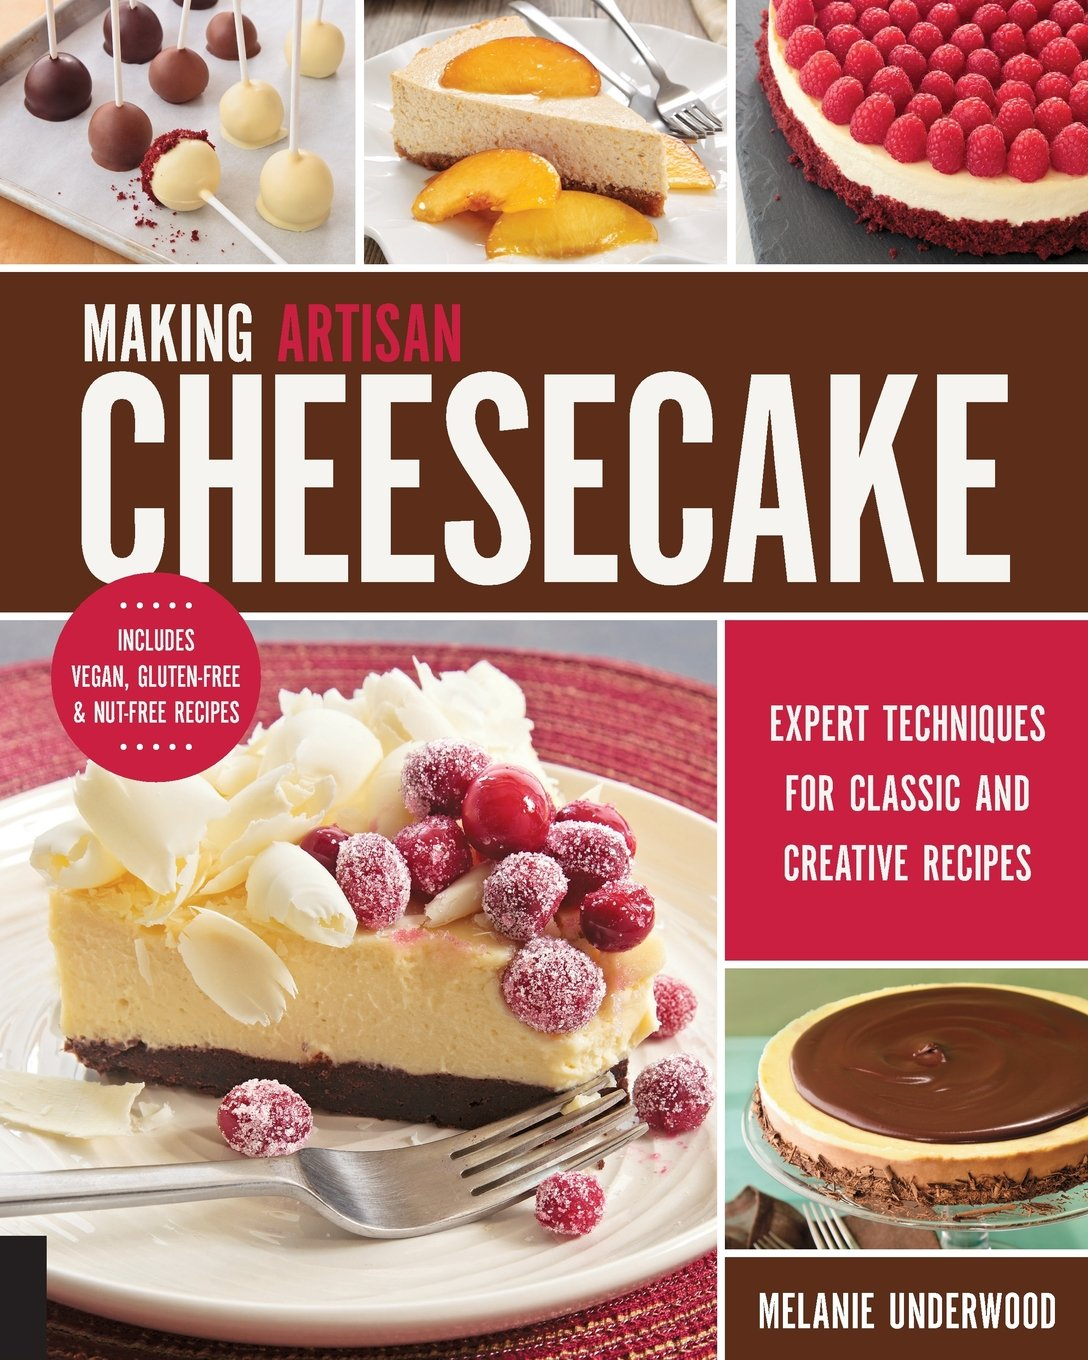 Making Artisan Cheesecake: Expert Techniques for Classic and Creative Recipes - Includes Vegan, Gluten-Free & Nut-Free Recipes ebook